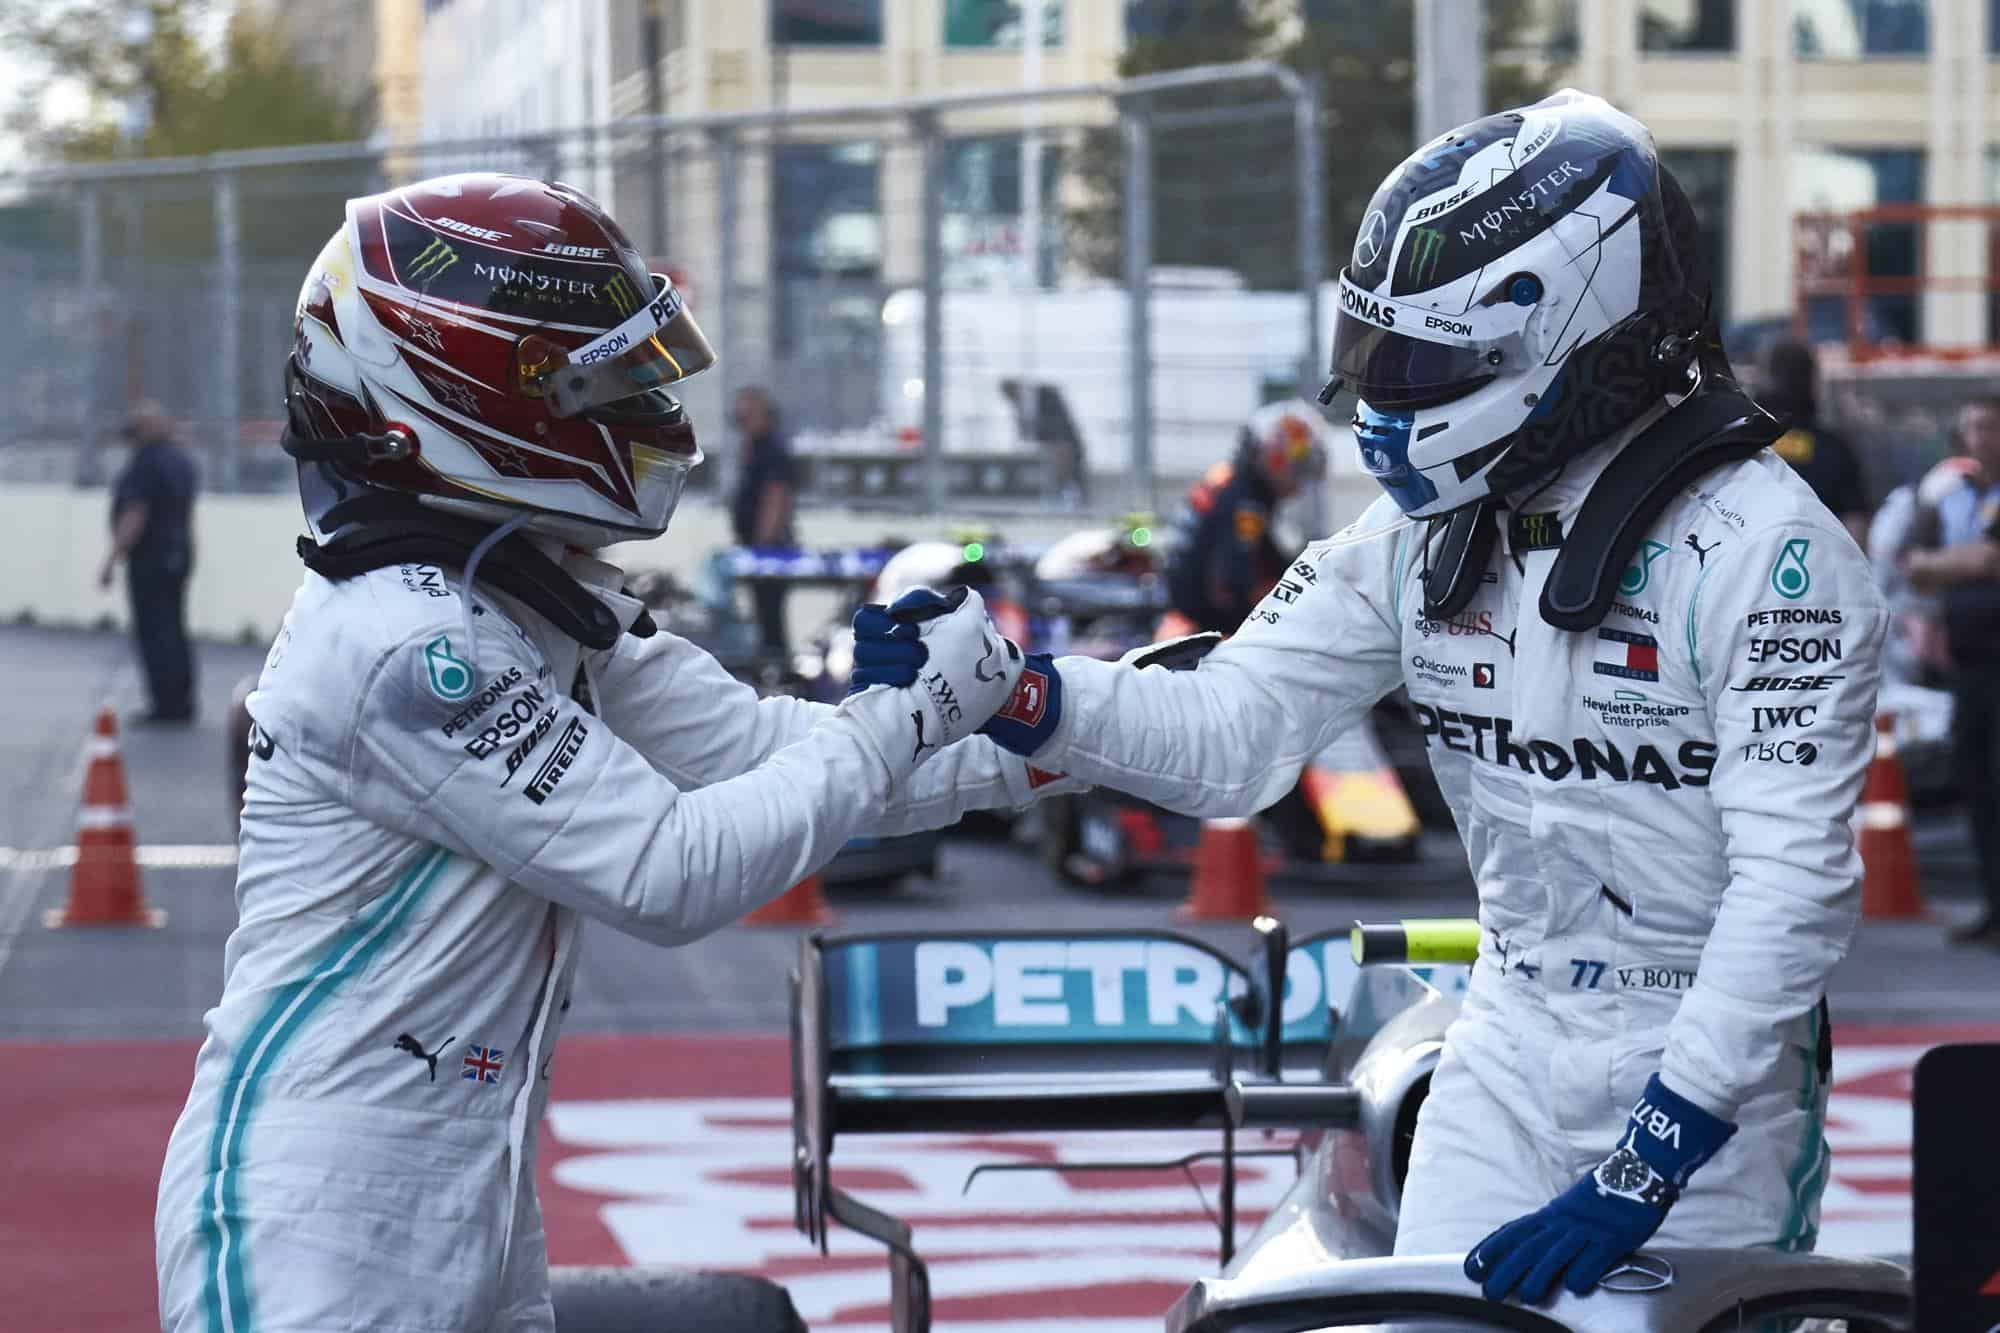 Azerbaijan GP F1 2019 Bottas and Hamilton after the race with helmets Photo Daimler